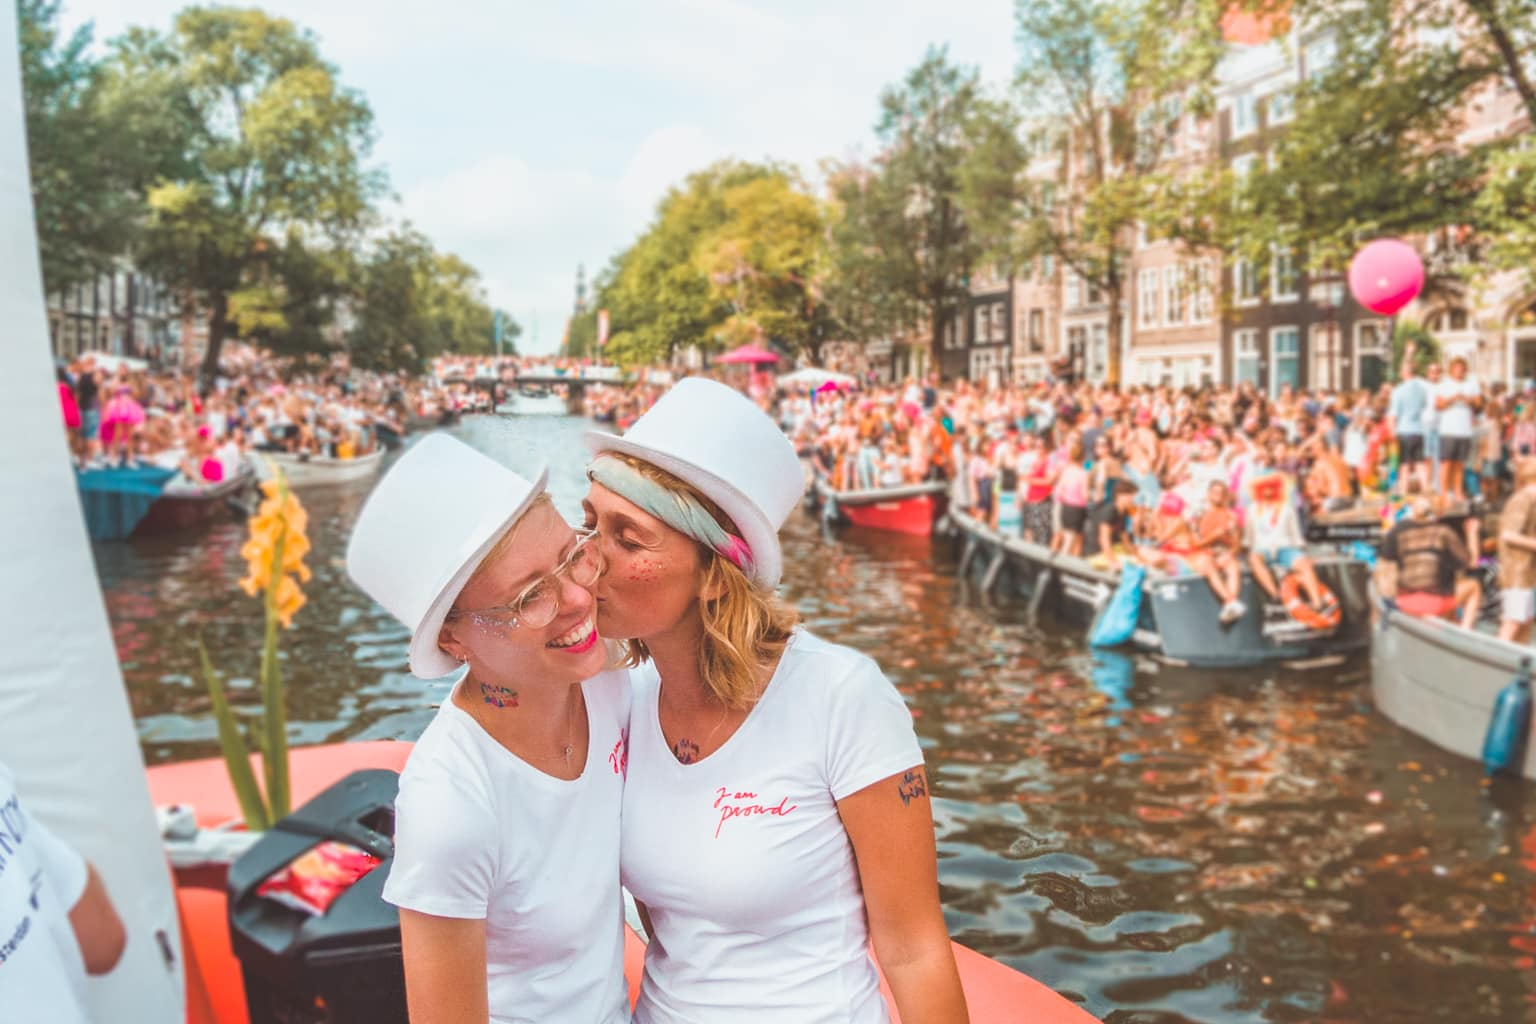 Amsterdam Pride, canal pride, canal parade, the Netherlands, LGBT pride, gay pride, lesbian couple, lesbian couple celebrating pride